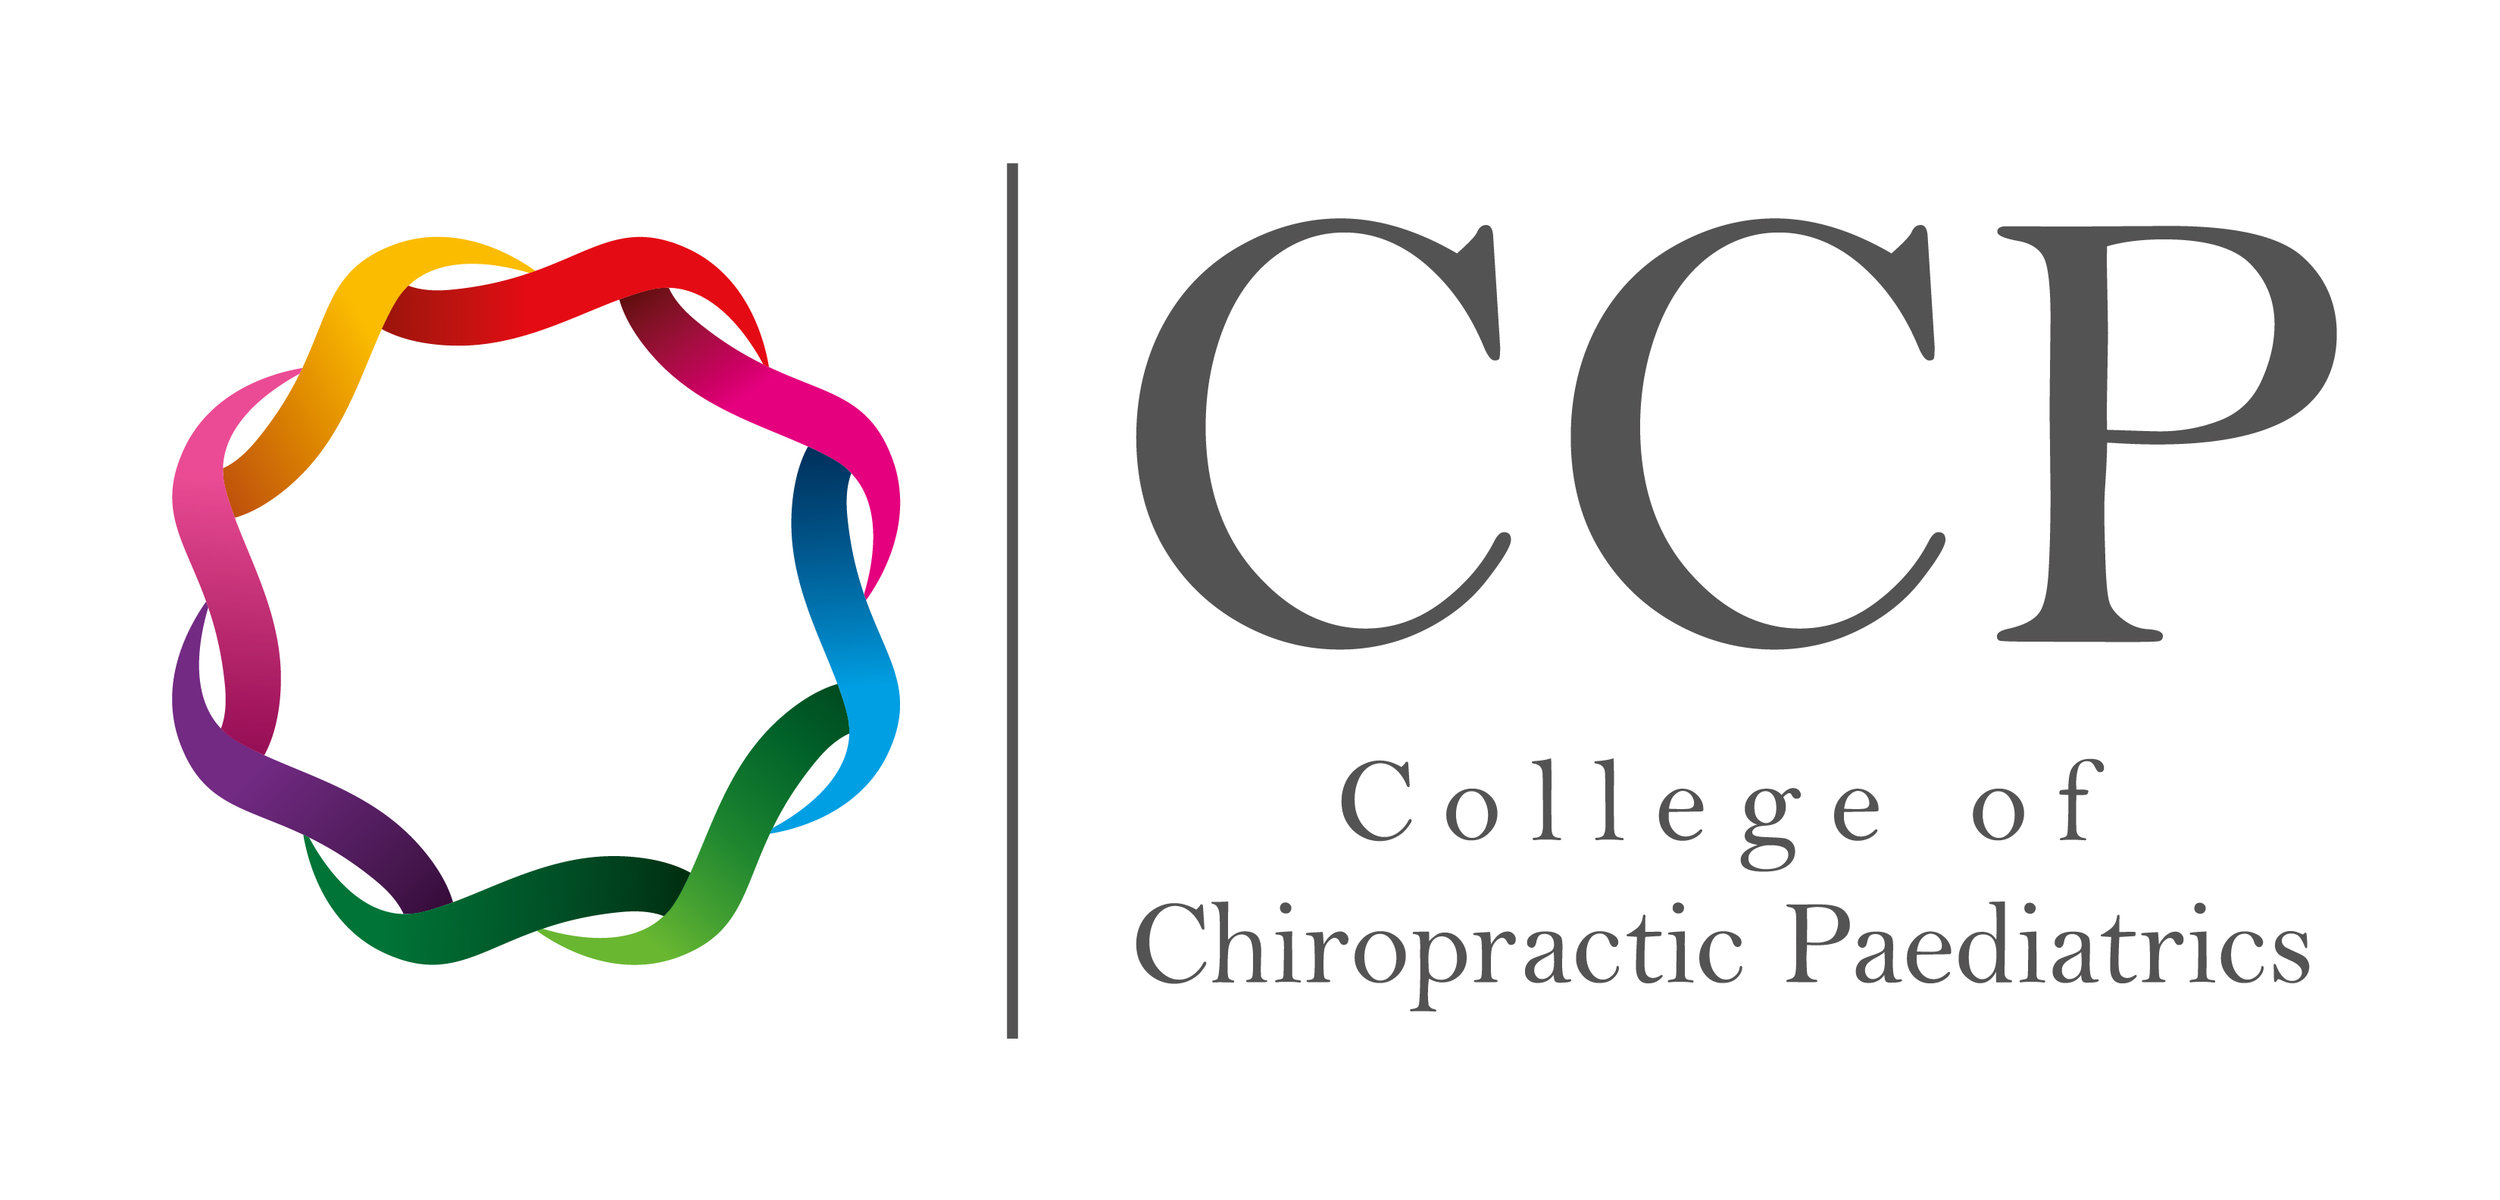 Dr euan is a proud member of the  college of chiropractic paediatrics. Click here for more info.